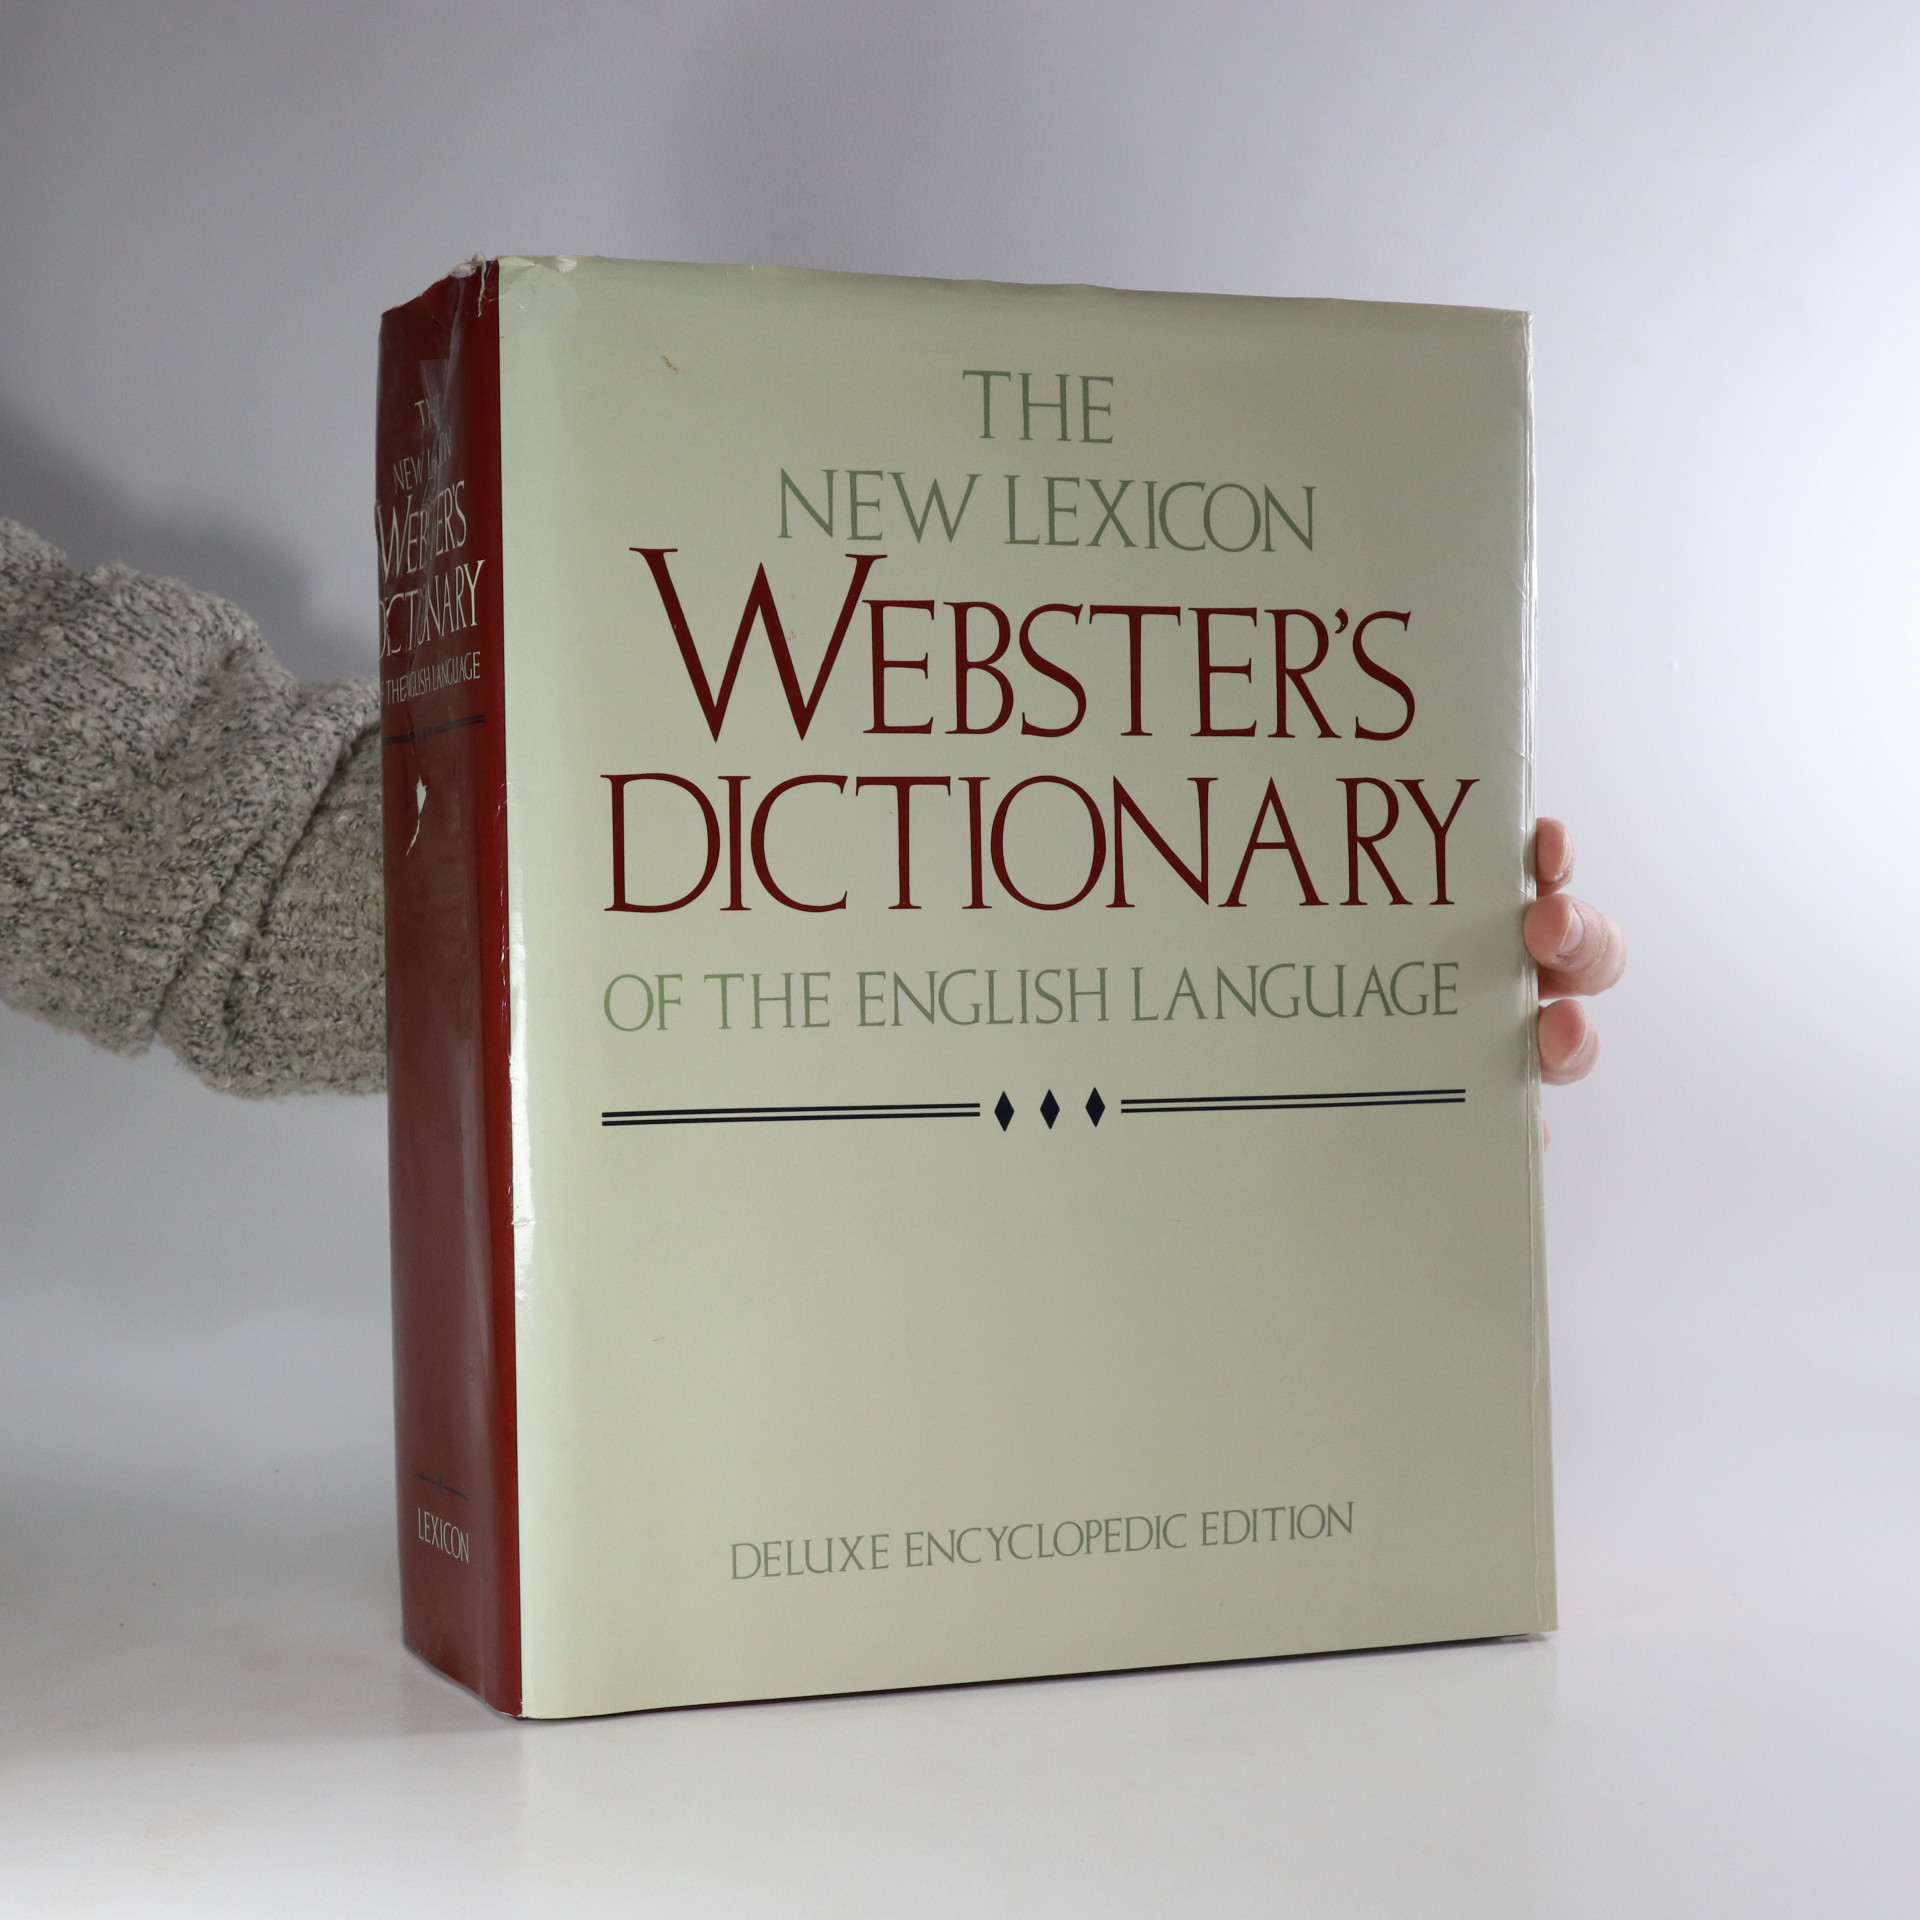 antikvární kniha The New Lexicon Webster's Dictionary of the English Language, 1992